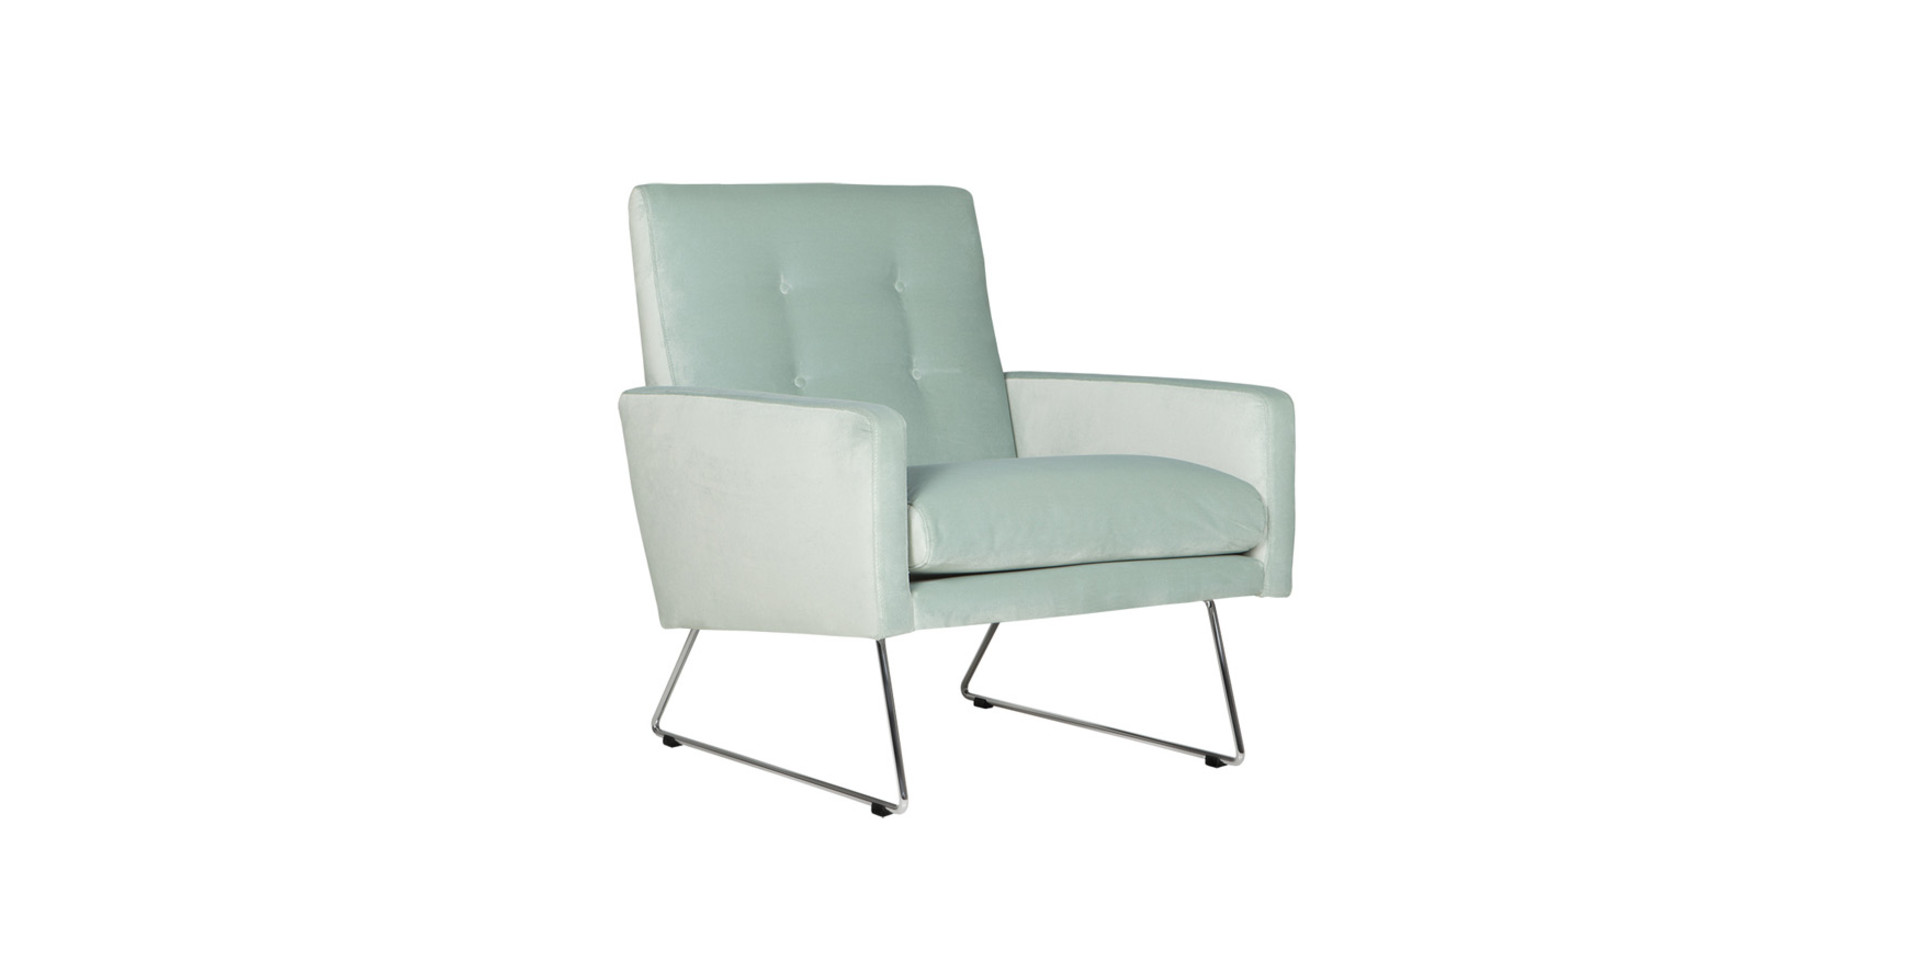 sits-max-fauteuil-classic_velvet13_light_turquoise_2